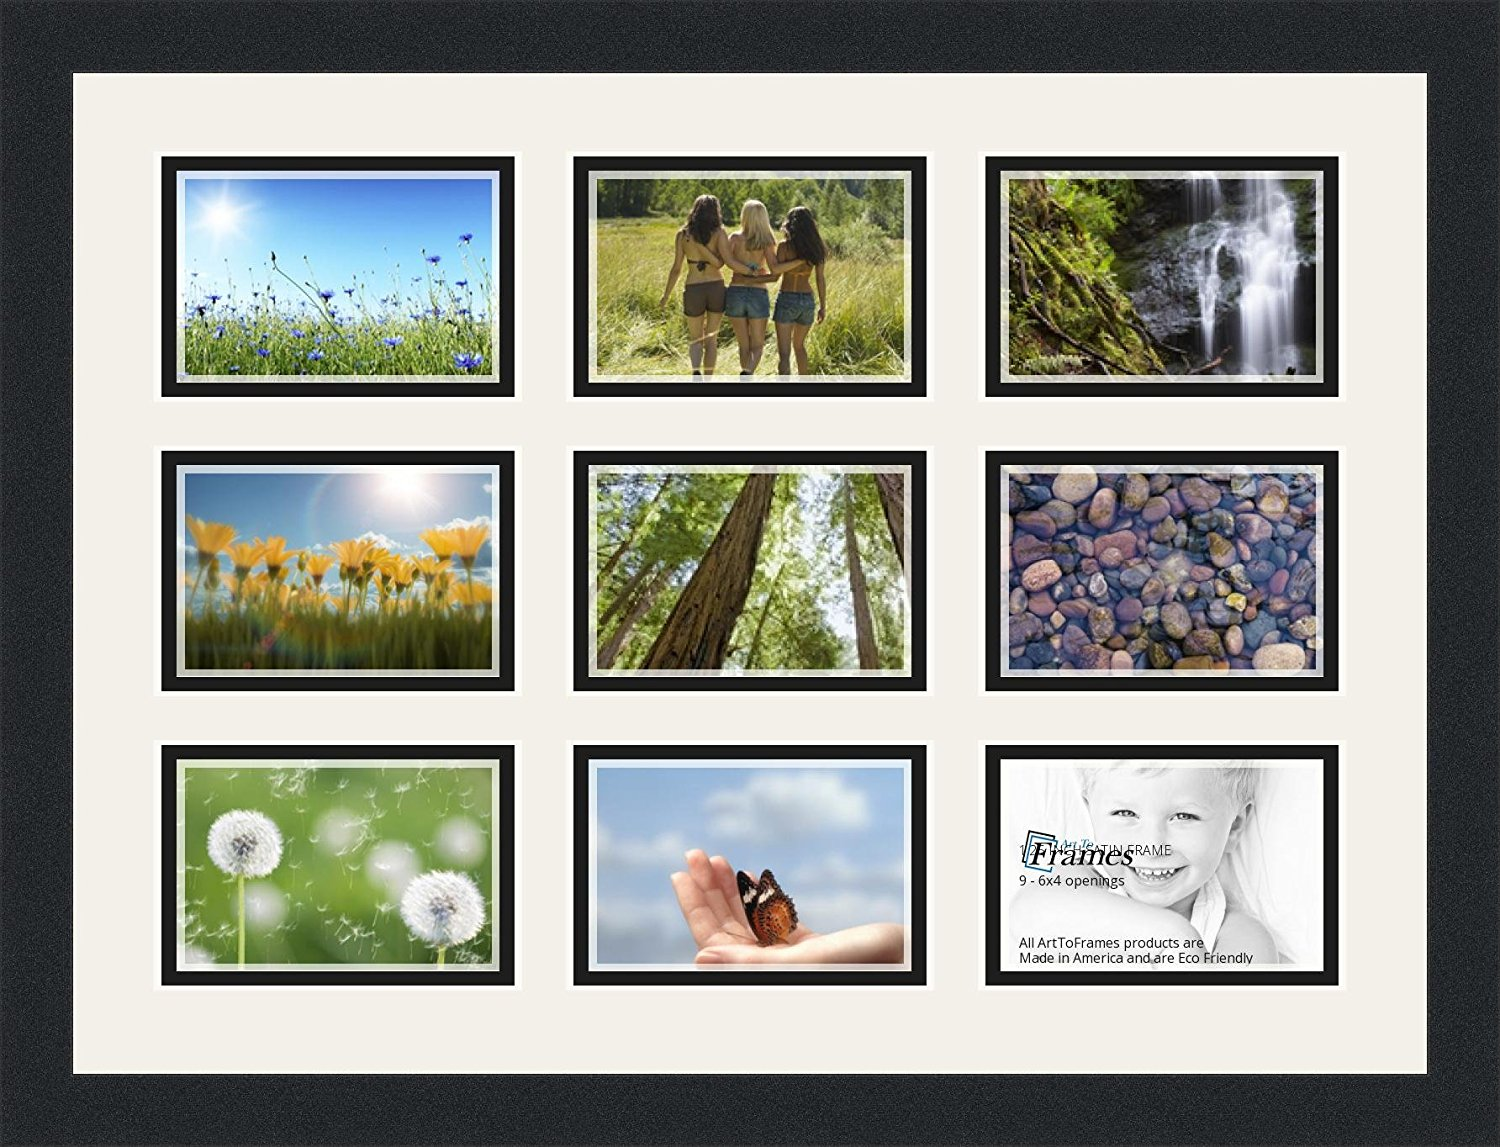 Cheap Photo Frame 9x6, find Photo Frame 9x6 deals on line at Alibaba.com